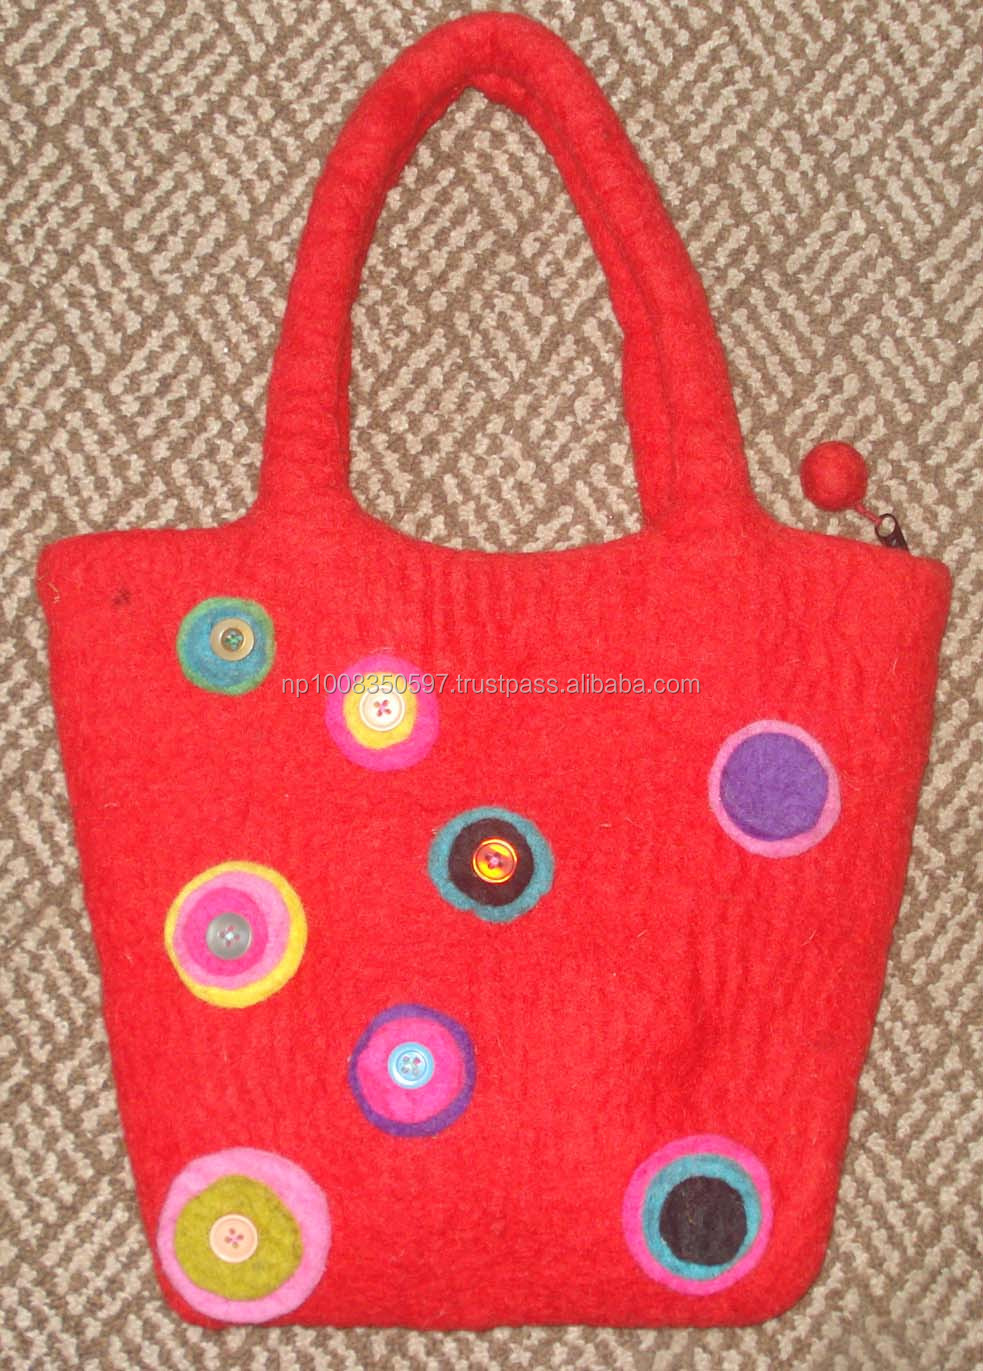 Felt bag red with round decoration